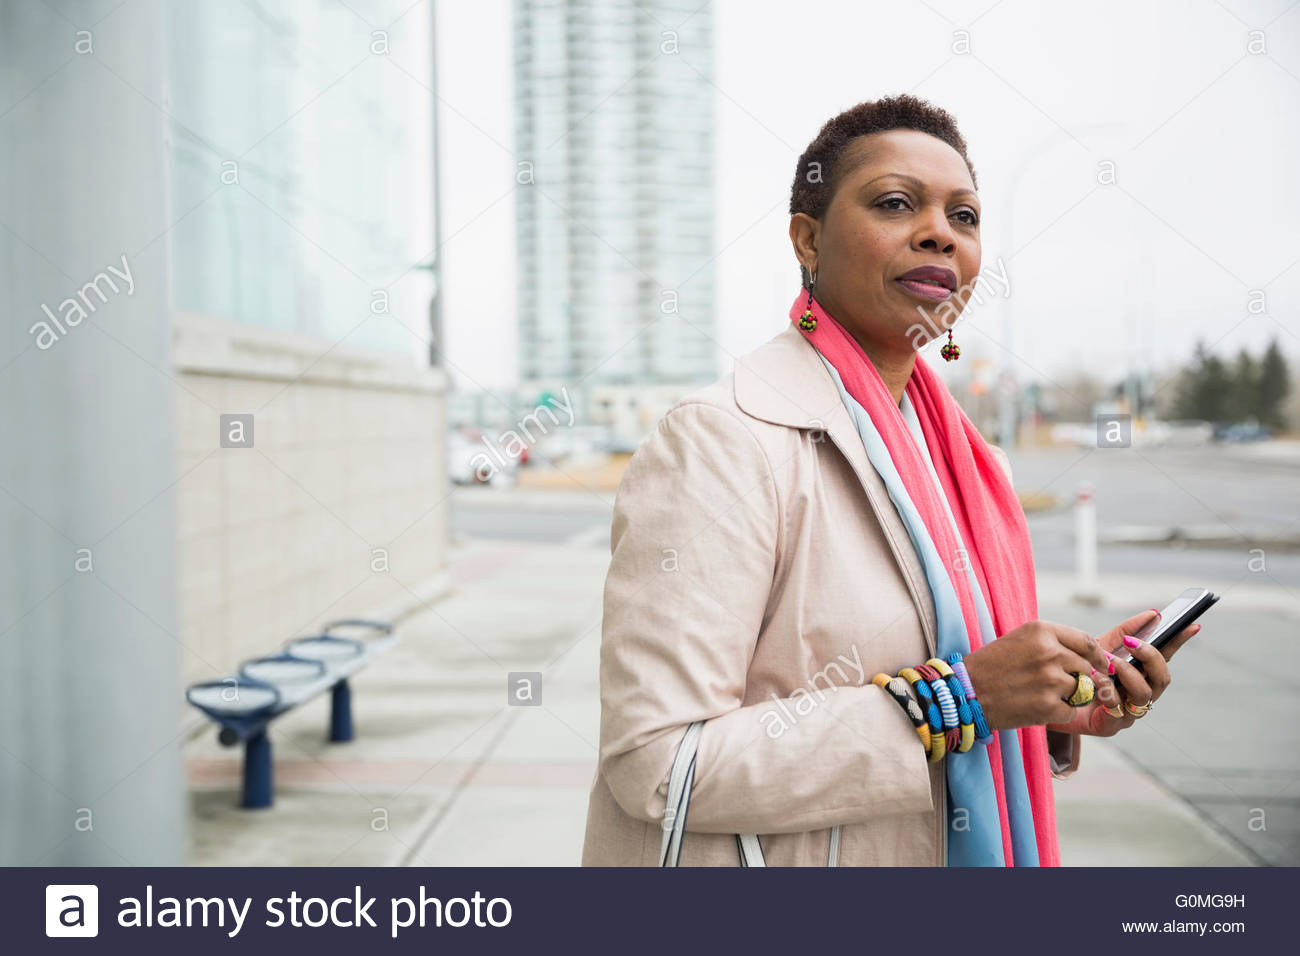 Woman with cell phone waiting at bus stop - Stock Image